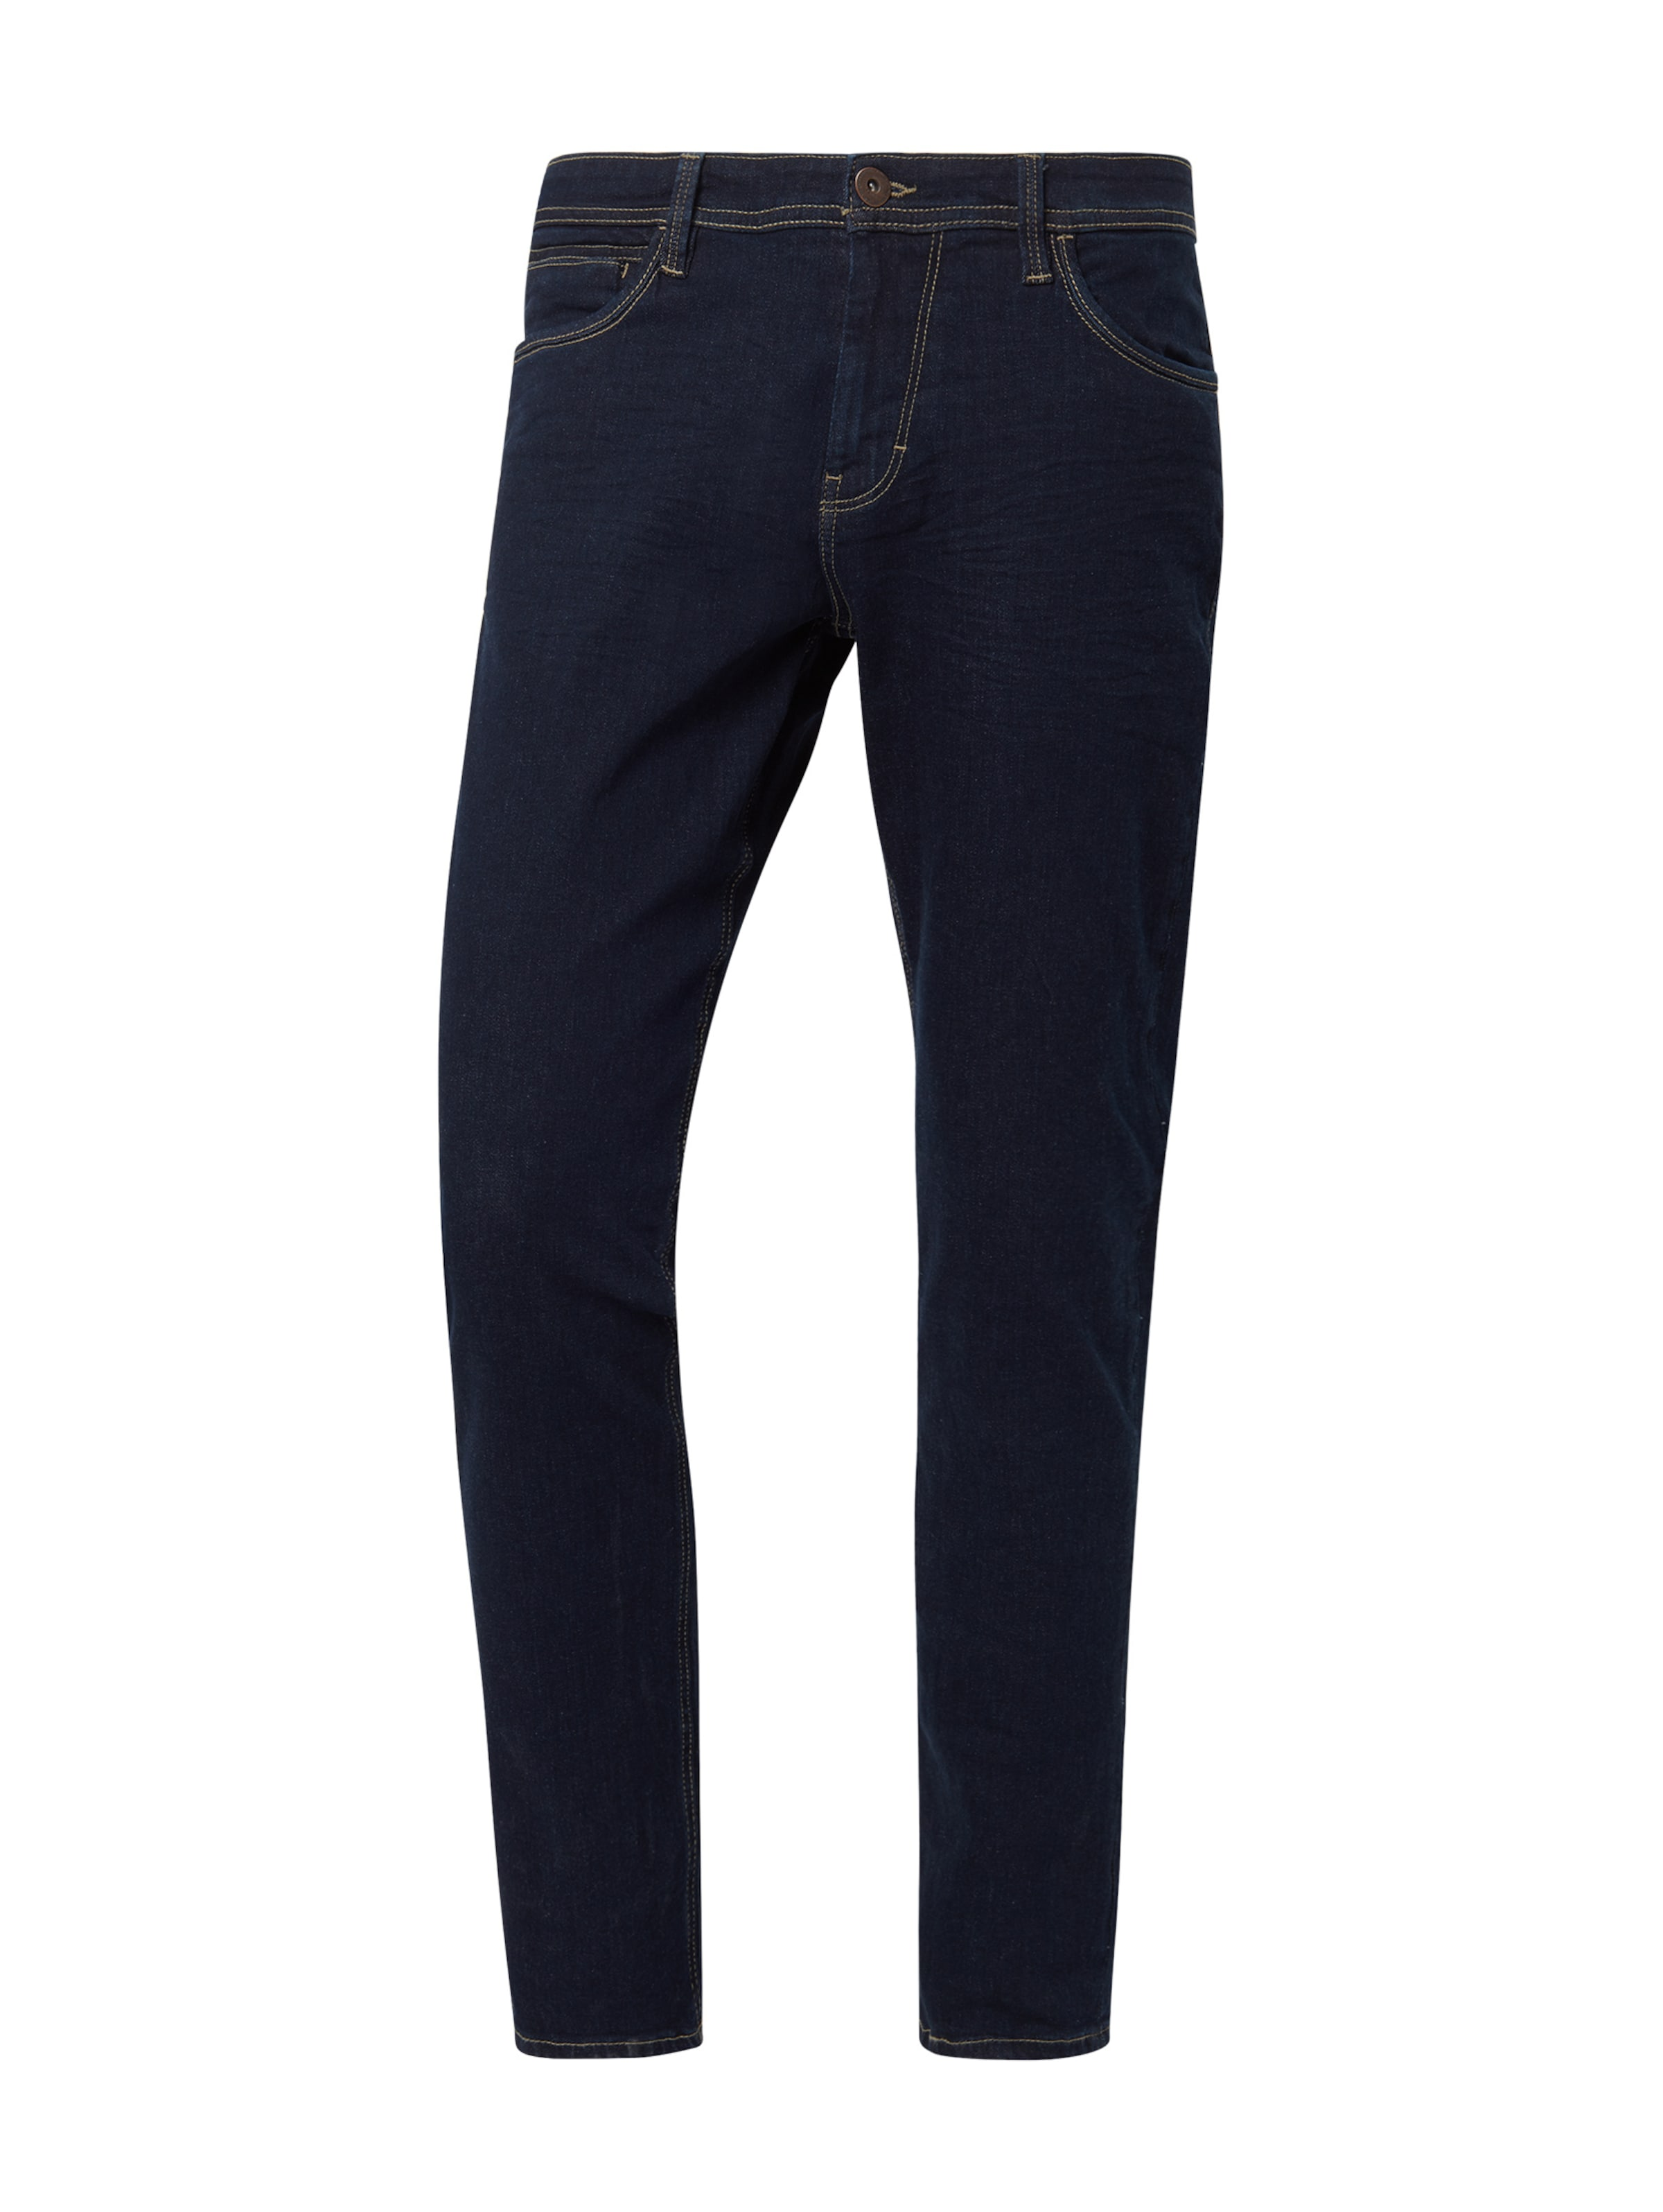 Jean 'josh' Denim Tom En Tailor Bleu BsCQxthdor